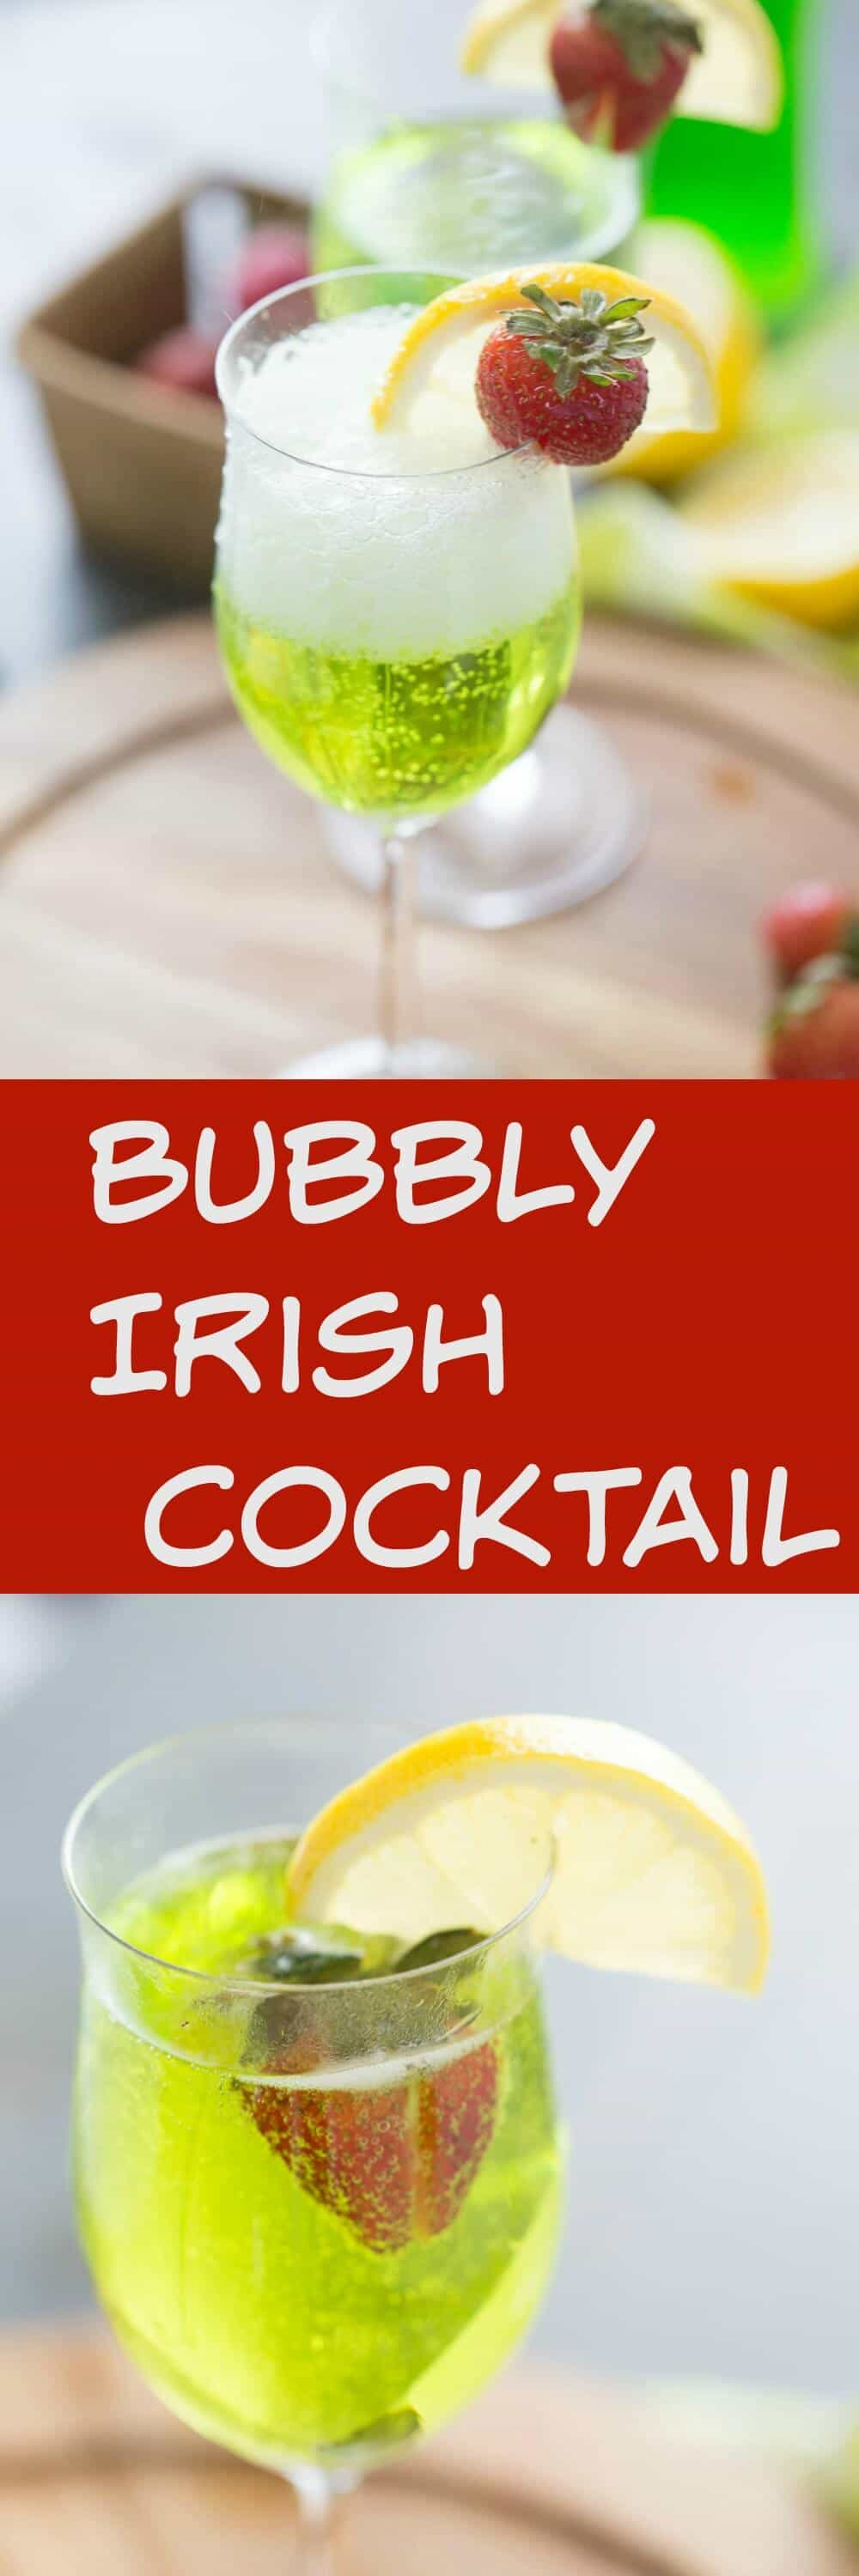 Want to bring some fun to your party? This green Irish cocktail is perfect for parties! Prosecco and Midori make this bubbly cocktail bright and effervescent!